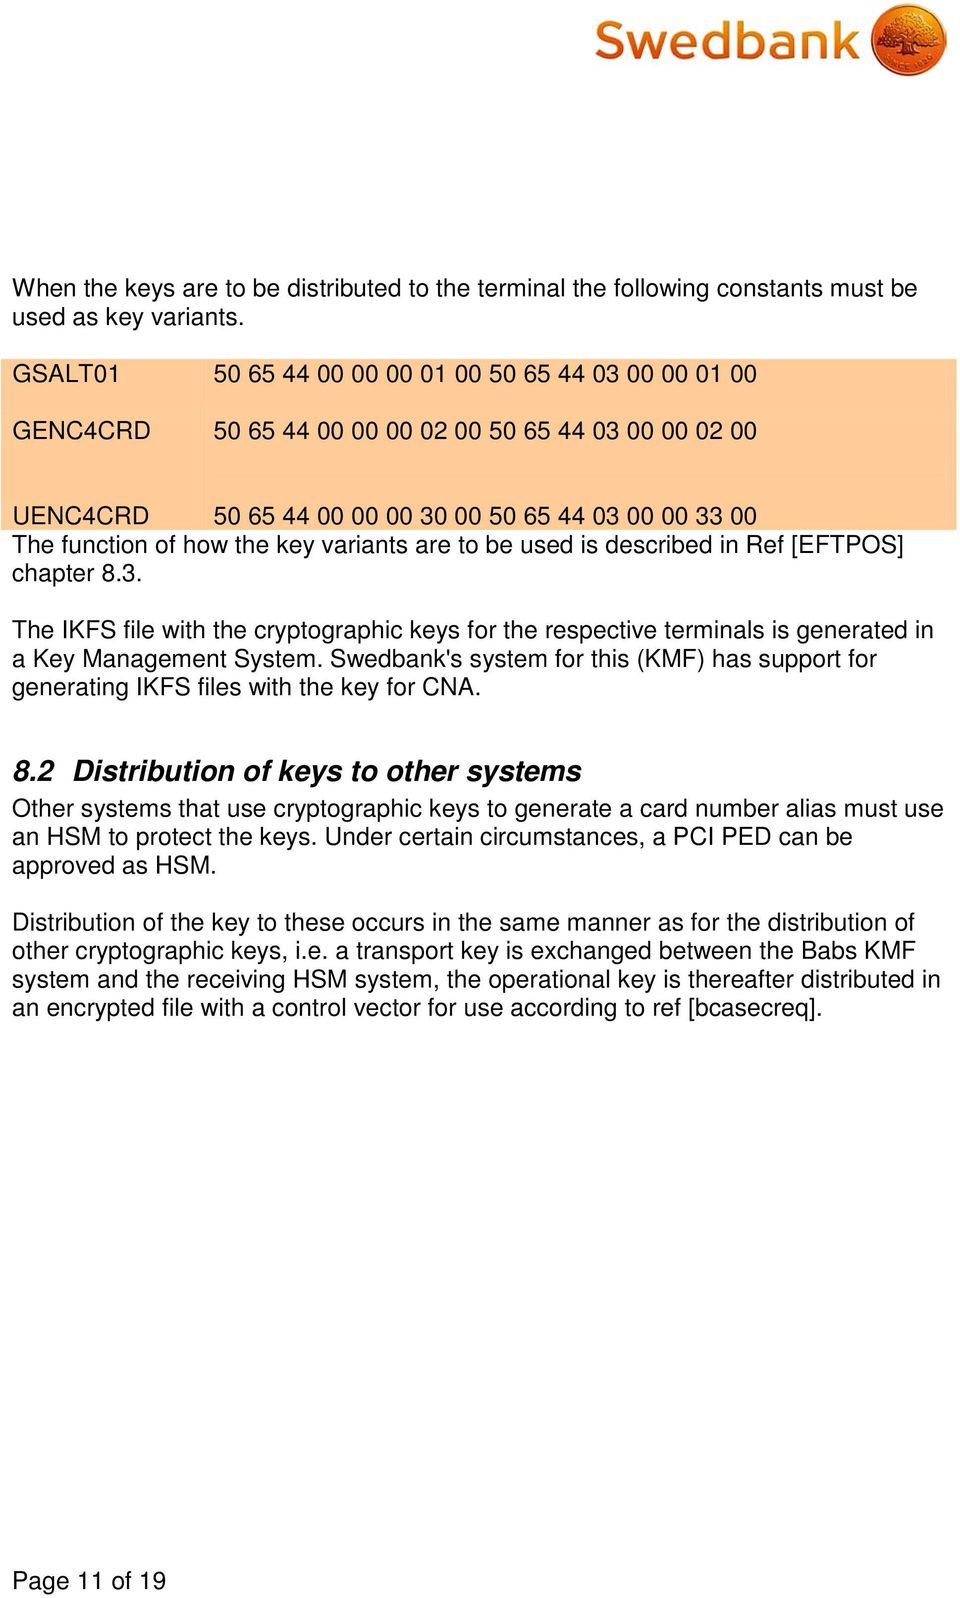 variants are to be used is described in Ref [EFTPOS] chapter 8.3. The IKFS file with the cryptographic keys for the respective terminals is generated in a Key Management System.